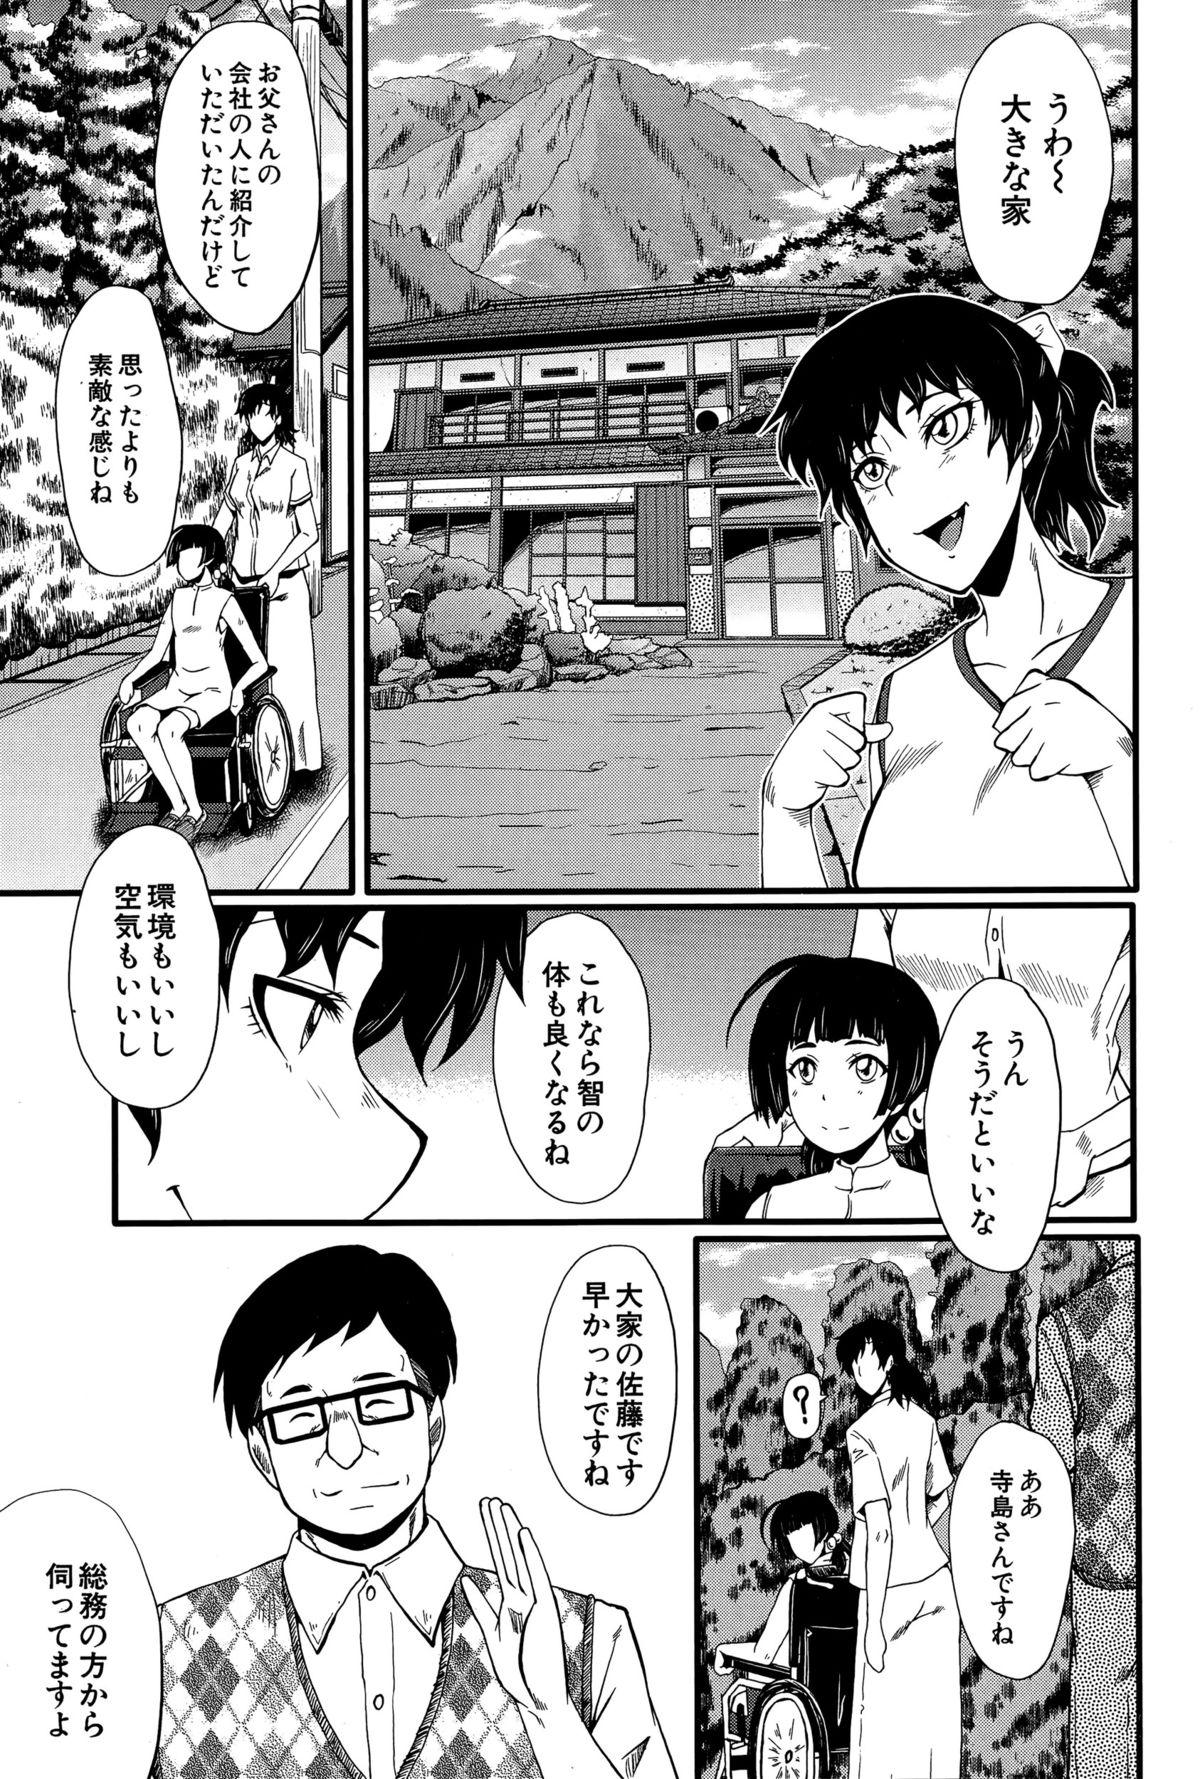 BUSTER COMIC 2015-07 102